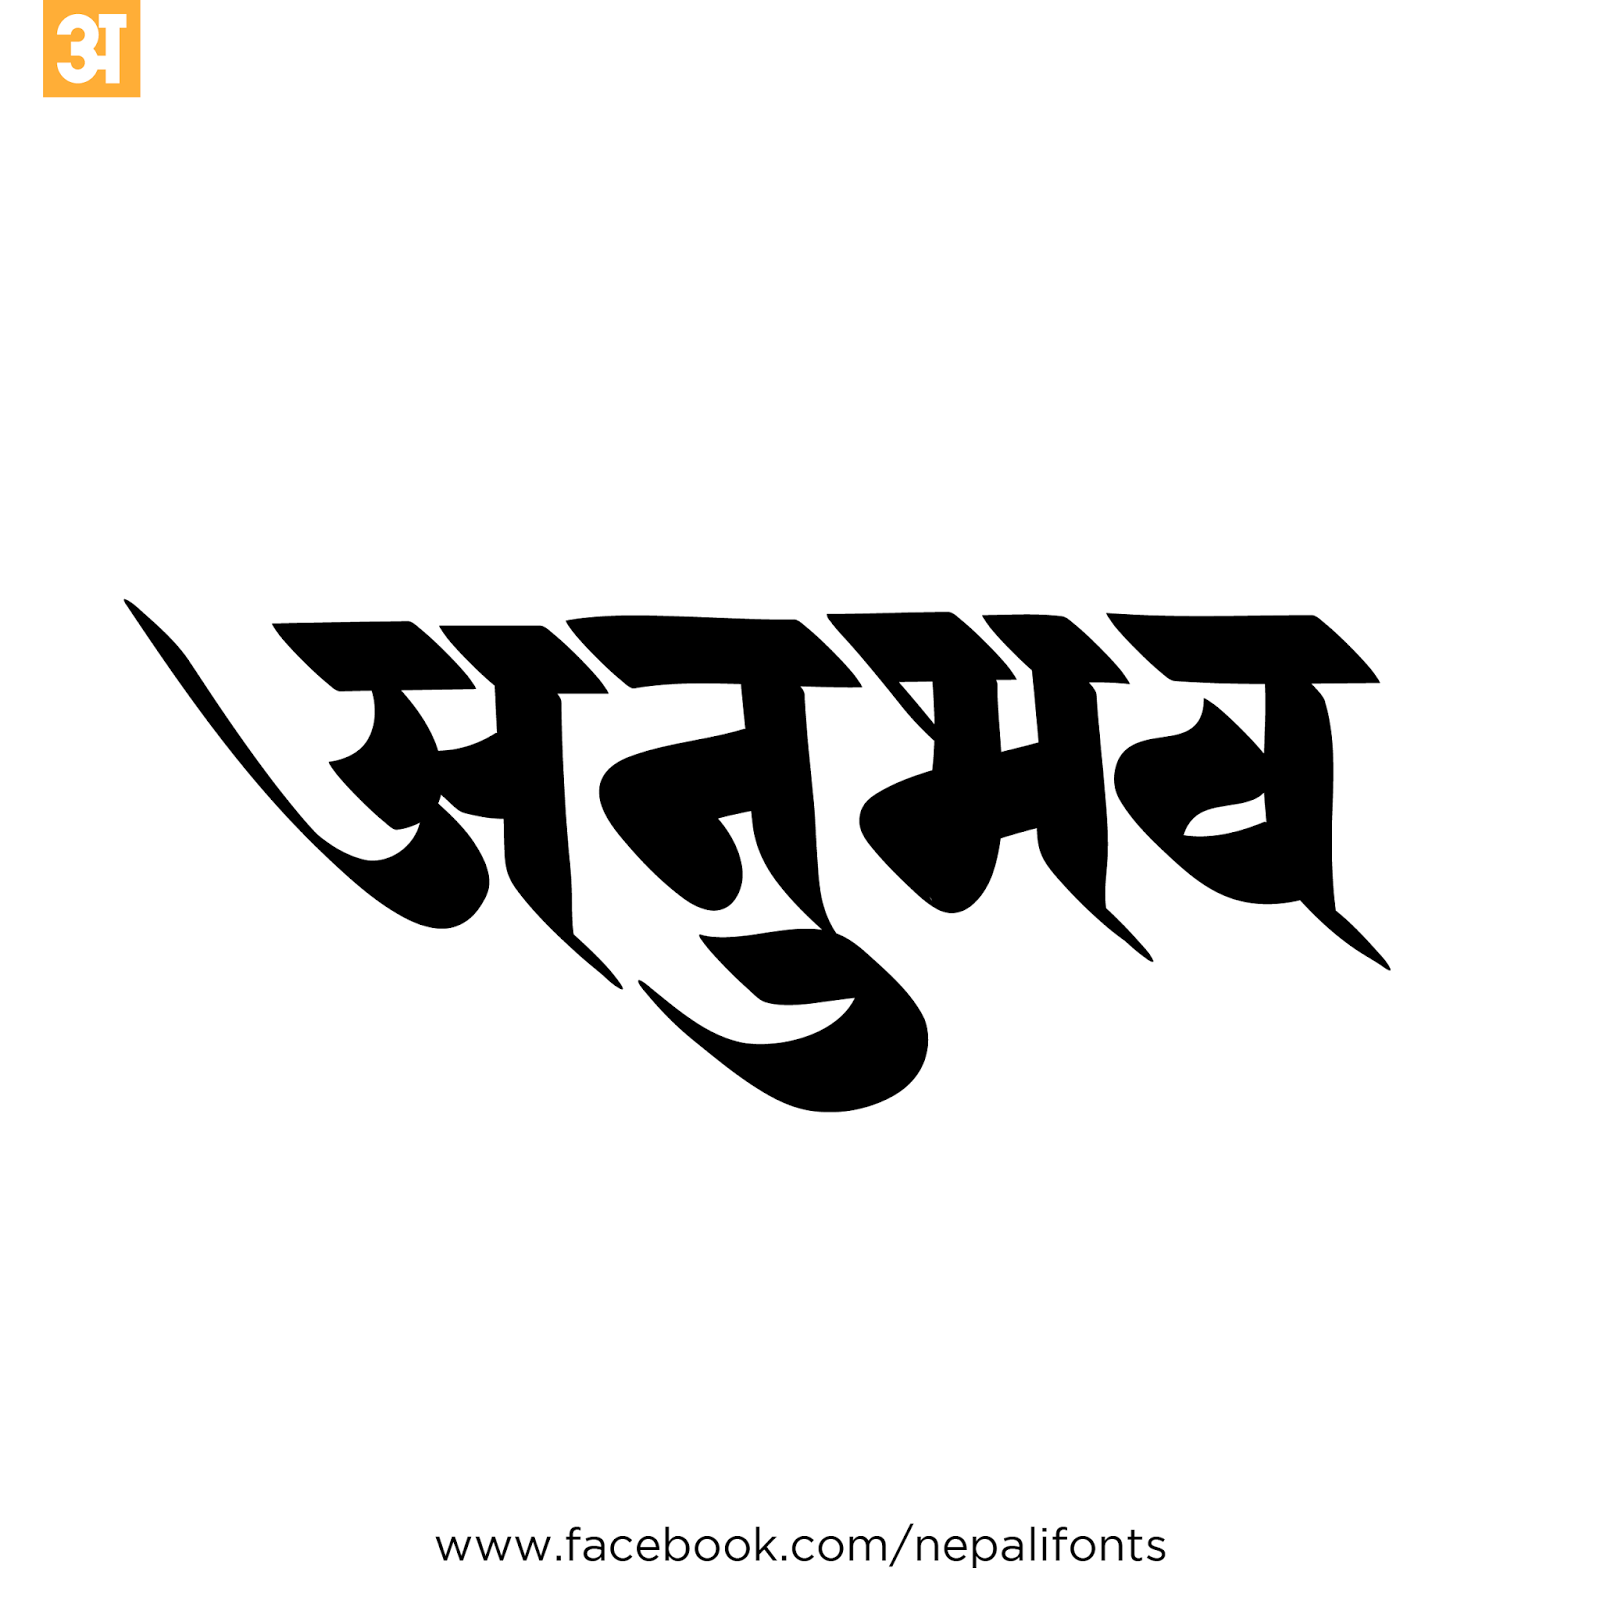 New Nepali Fonts Devanagari And Ranjana Lipi Calligraphy